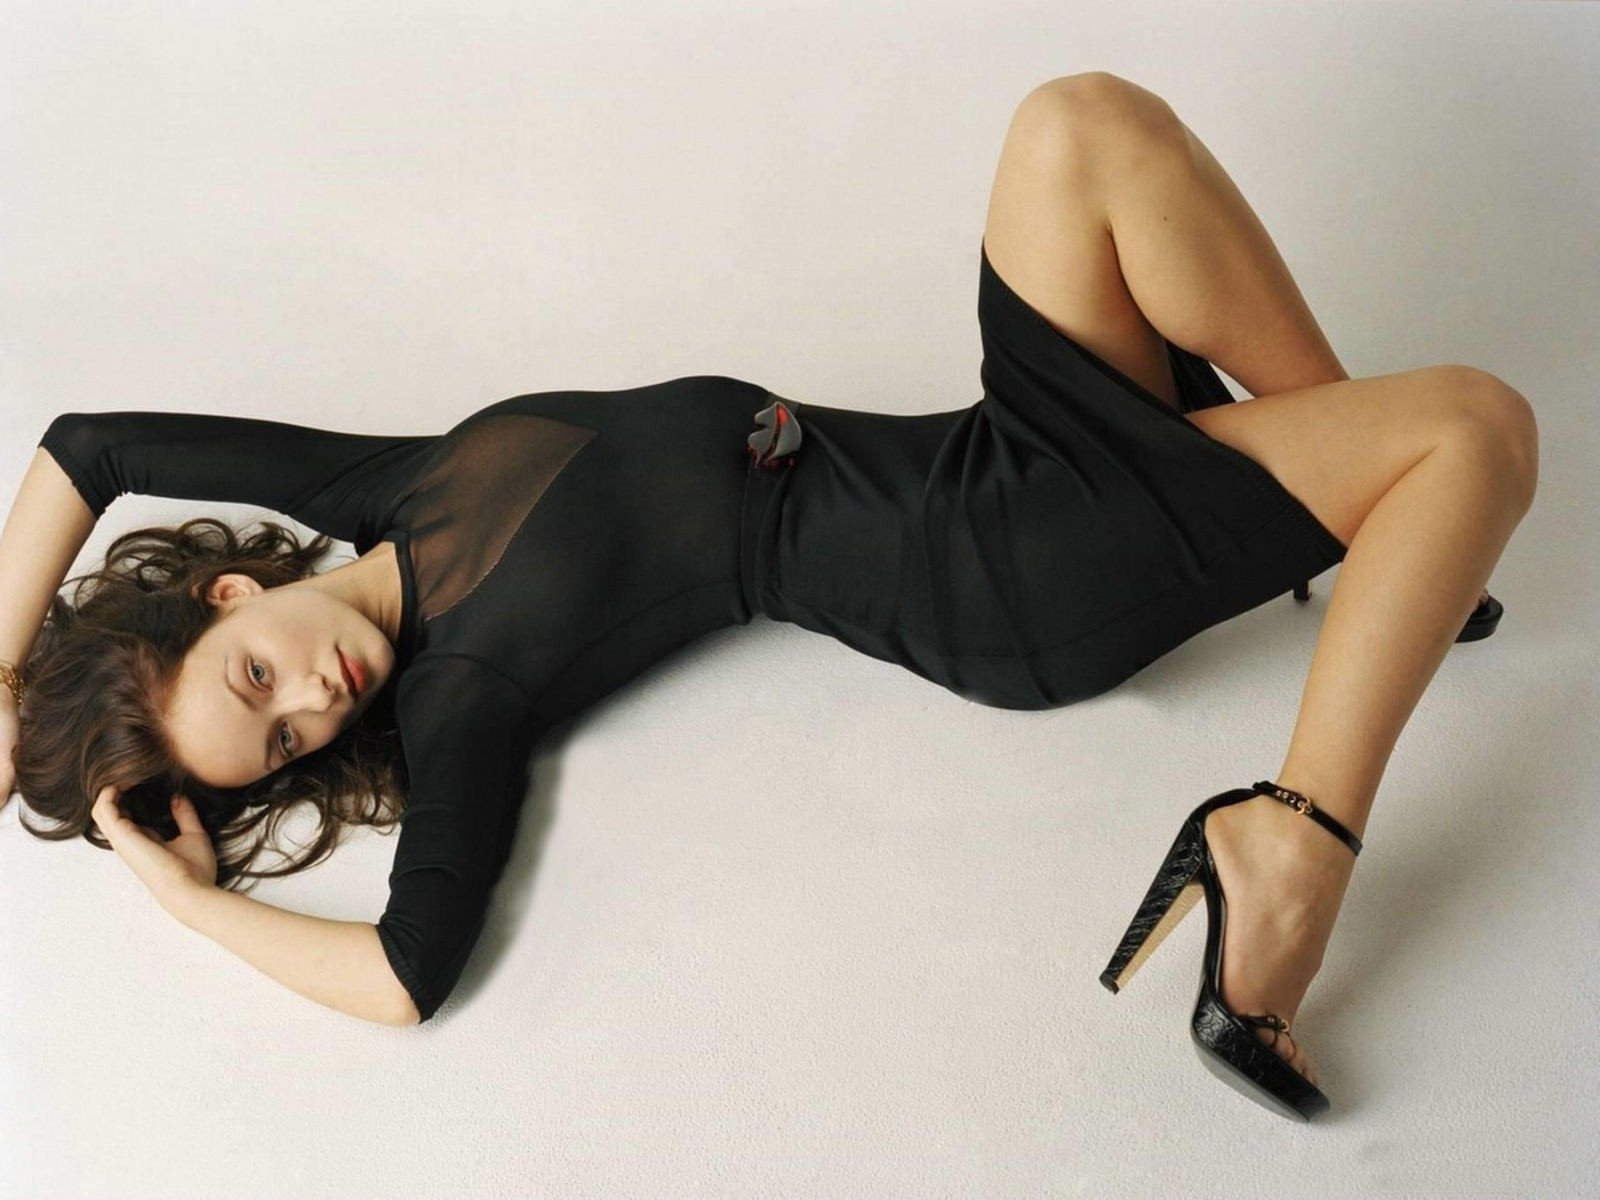 SENSUALITY - Olivia Wilde girl lips legs high heels black dress laying ...